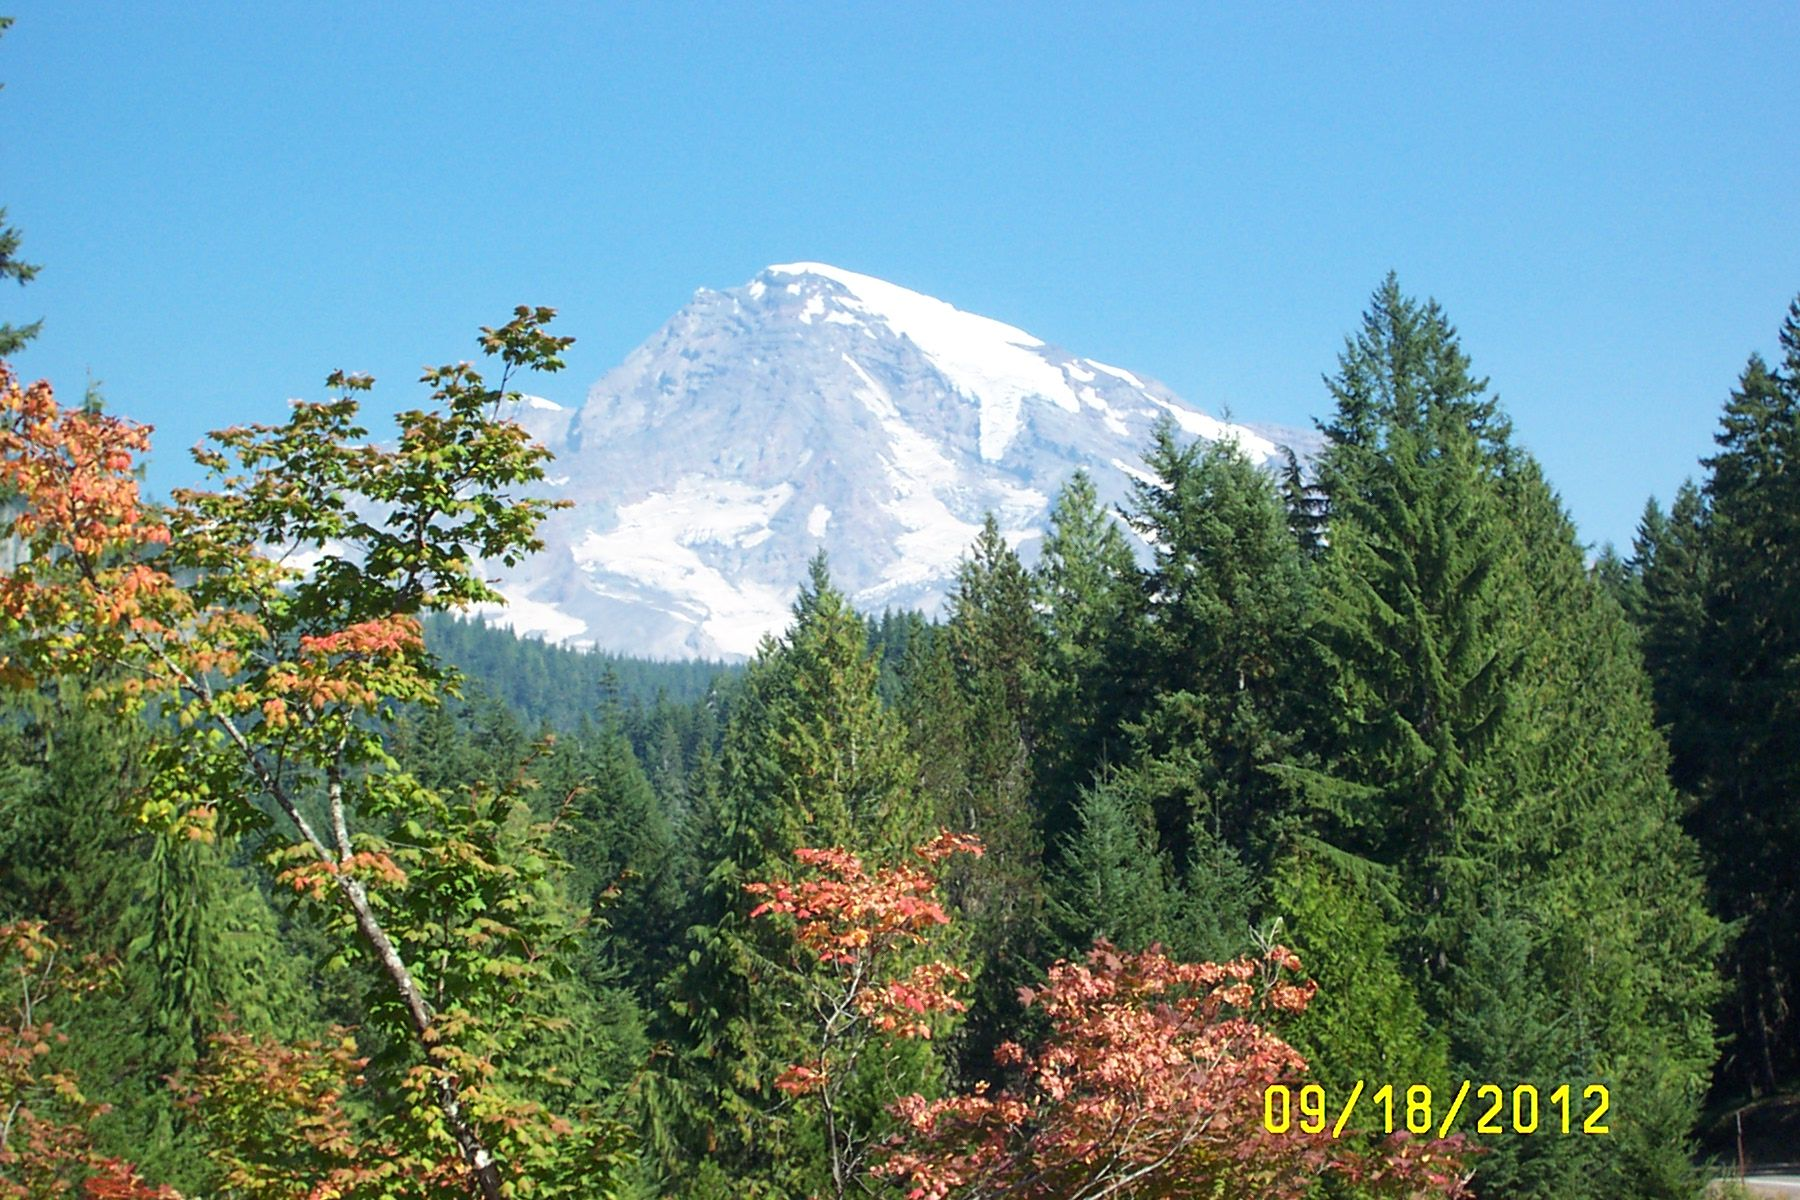 A September day in Washington State